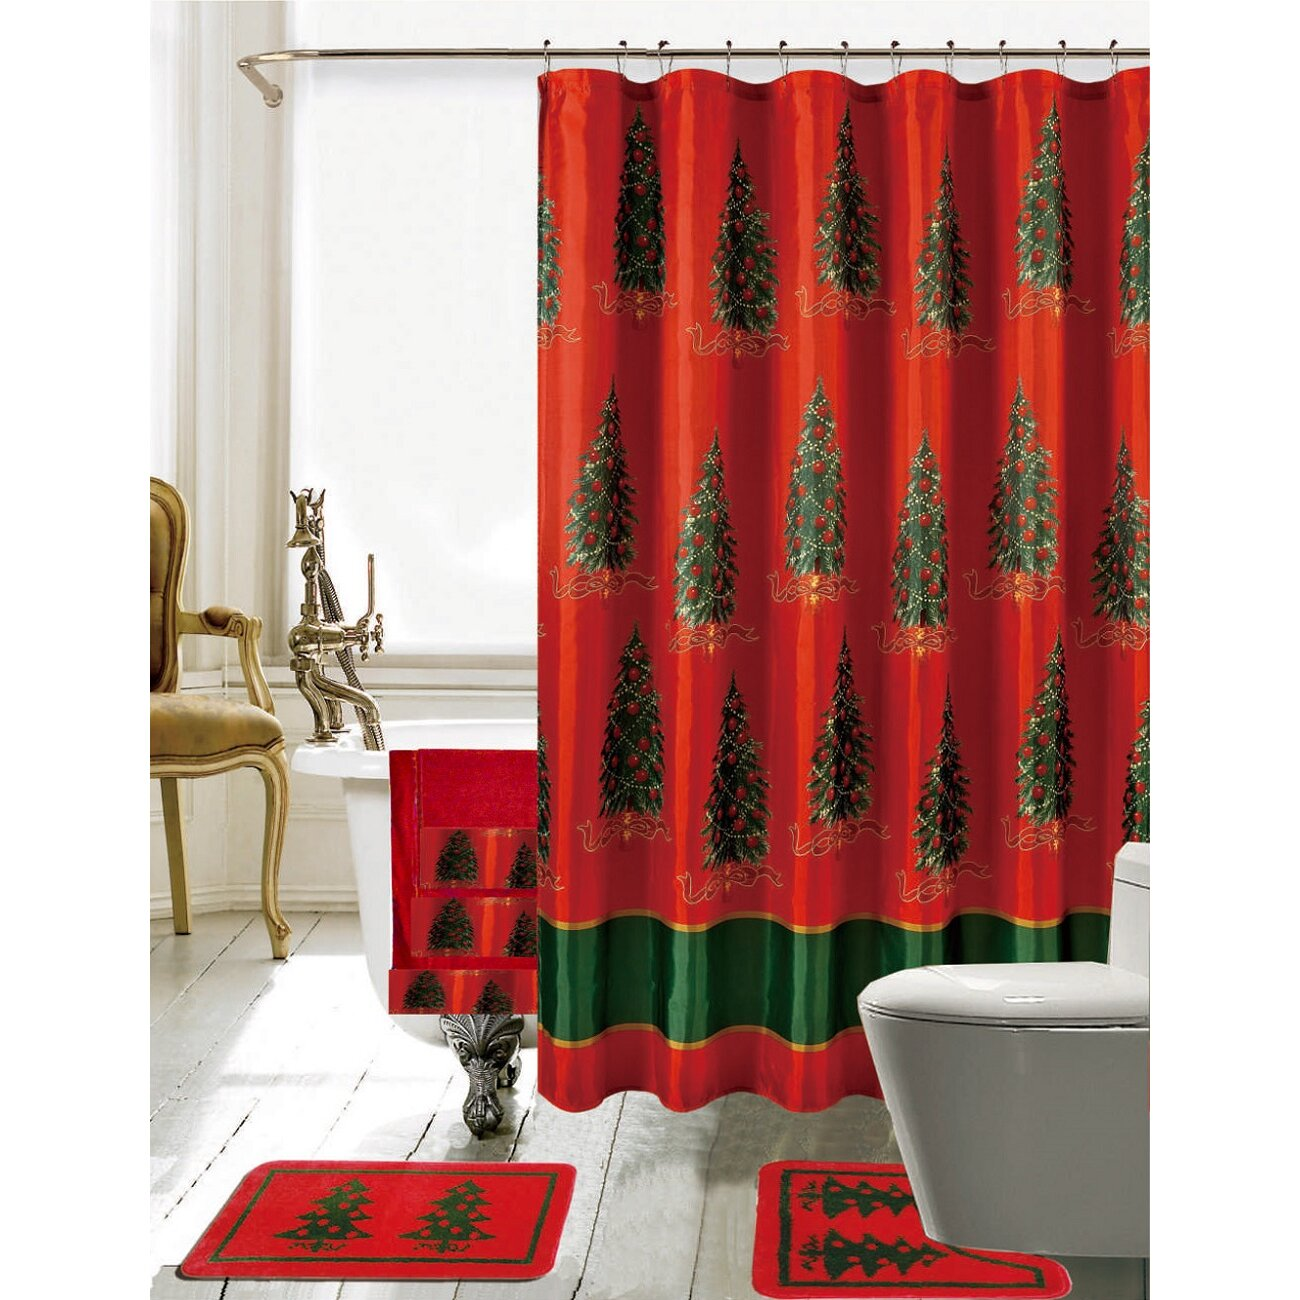 Daniels Bath Christmas Bathroom Decor 18 Piece Shower Curtain Set Reviews